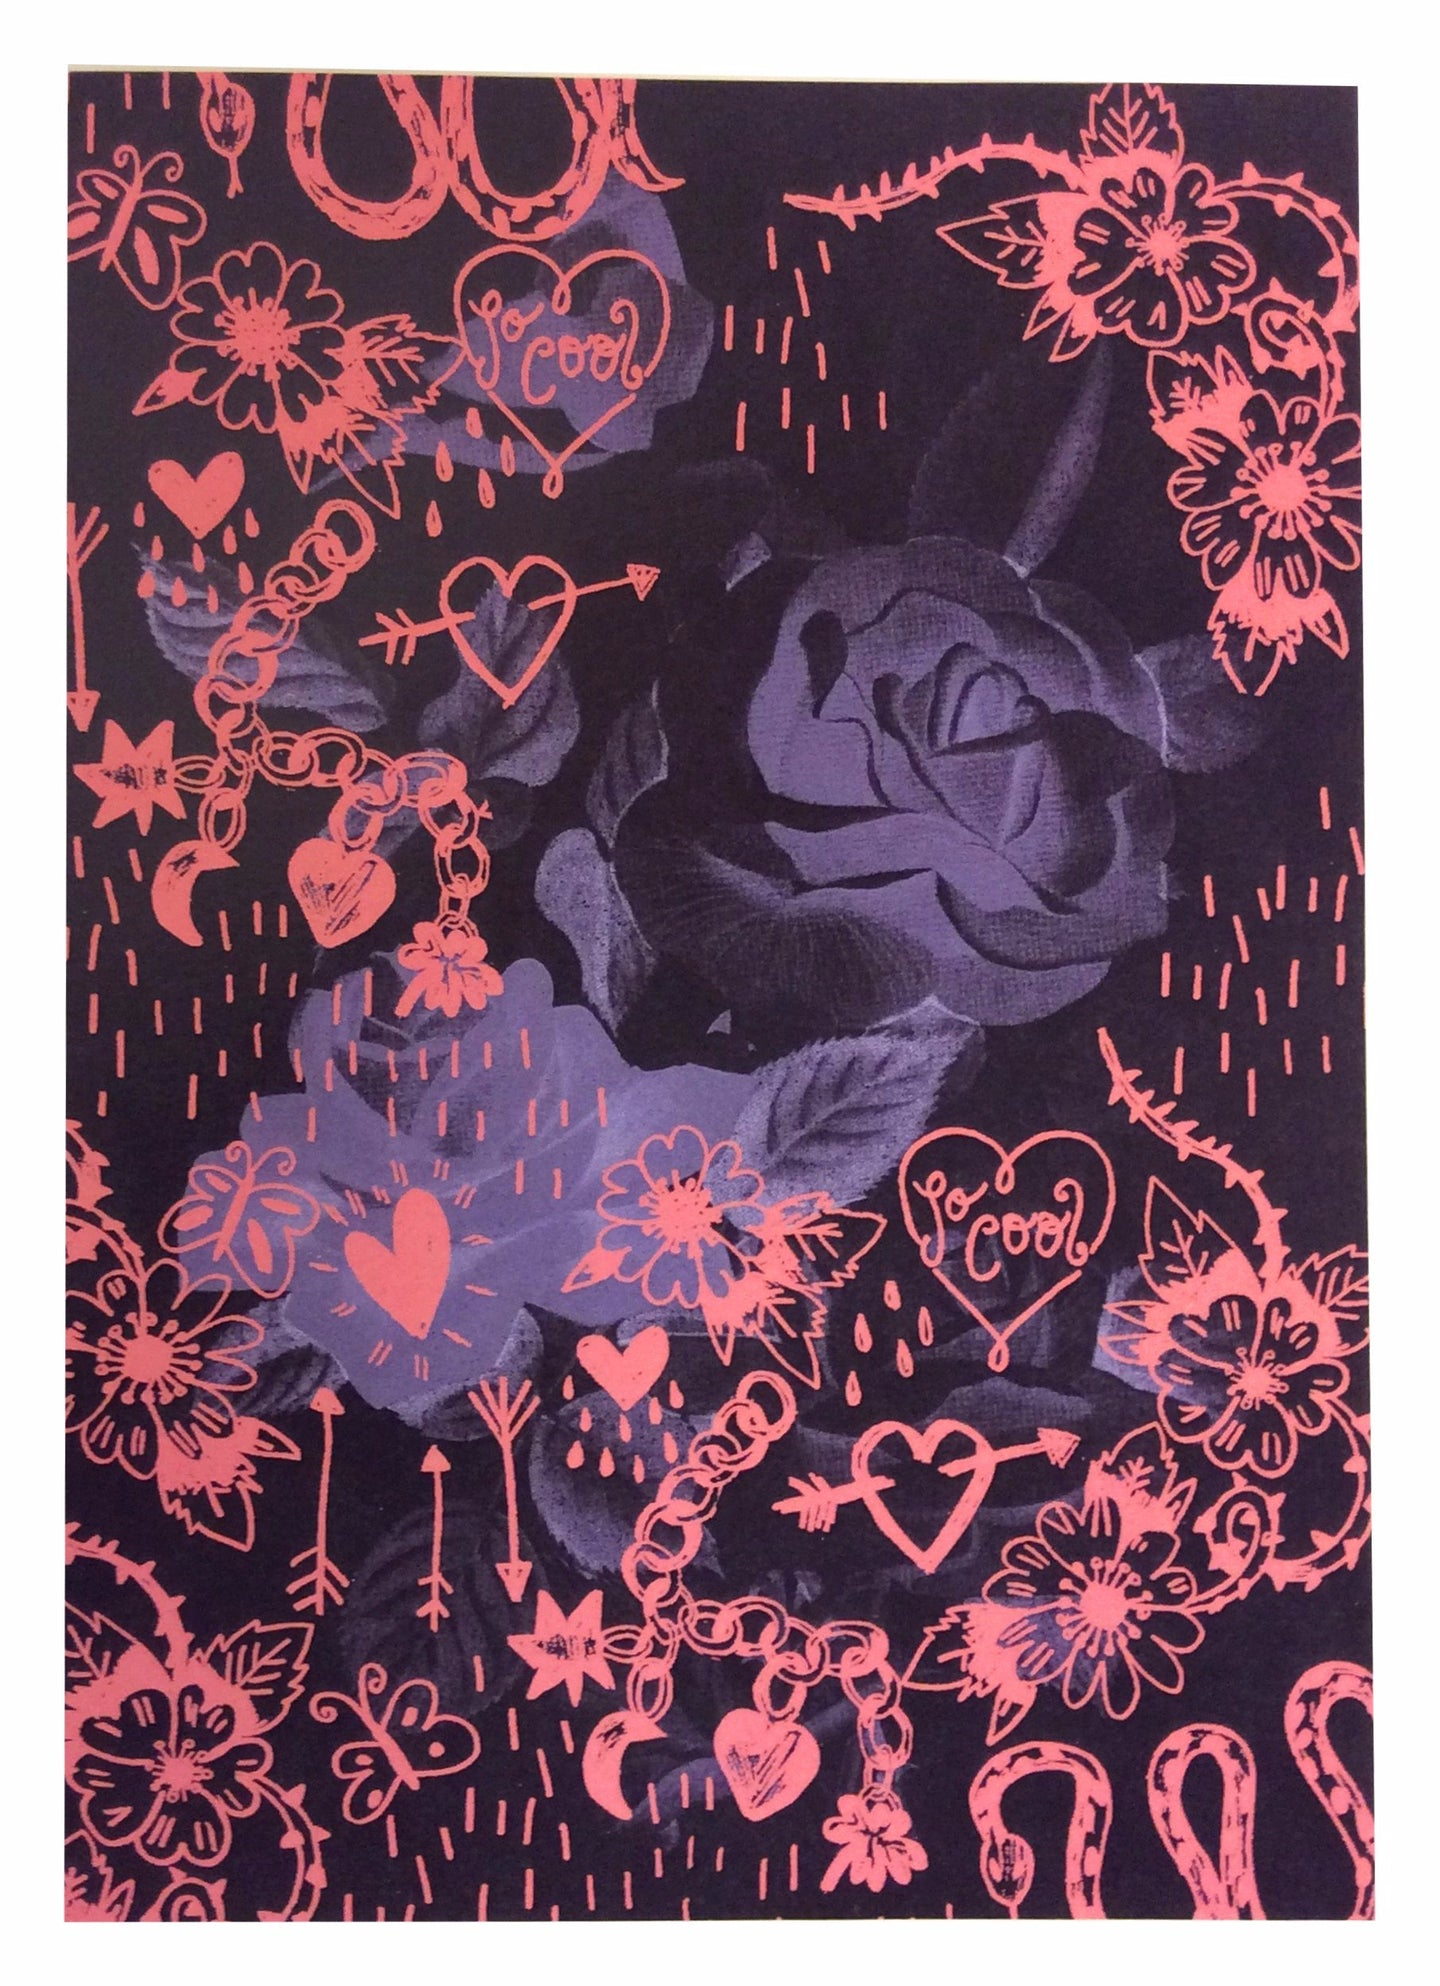 A5 So Cool Rose Art Print